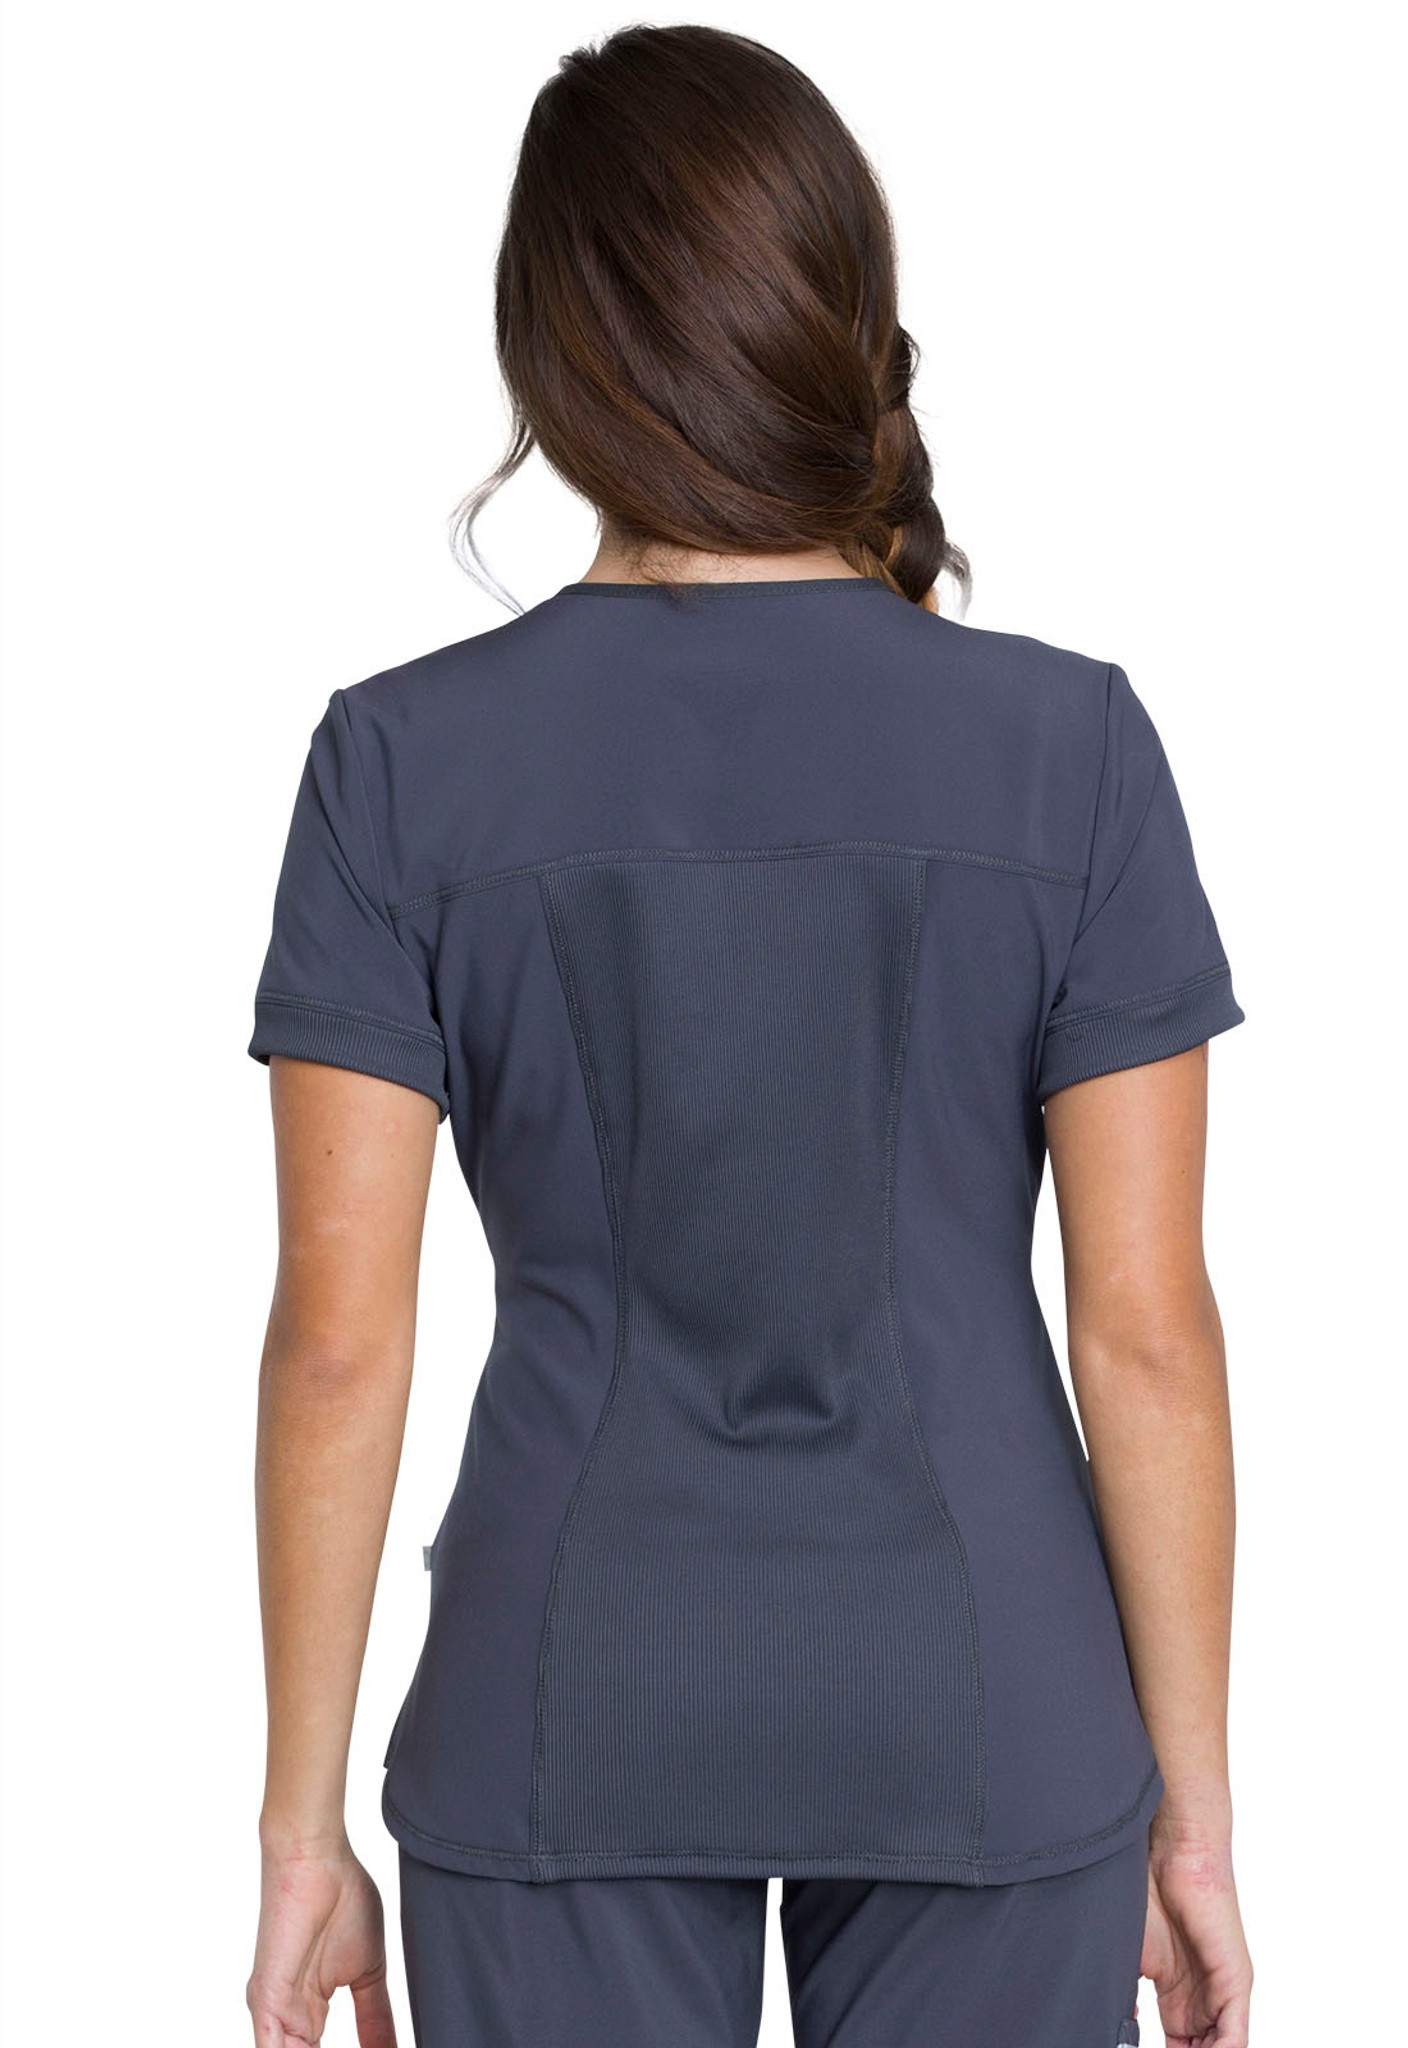 Cherokee Infinity CK810A Antimicrobial Women's Zip Front Scrub Top With 2 Pockets, Princess Seams, Back